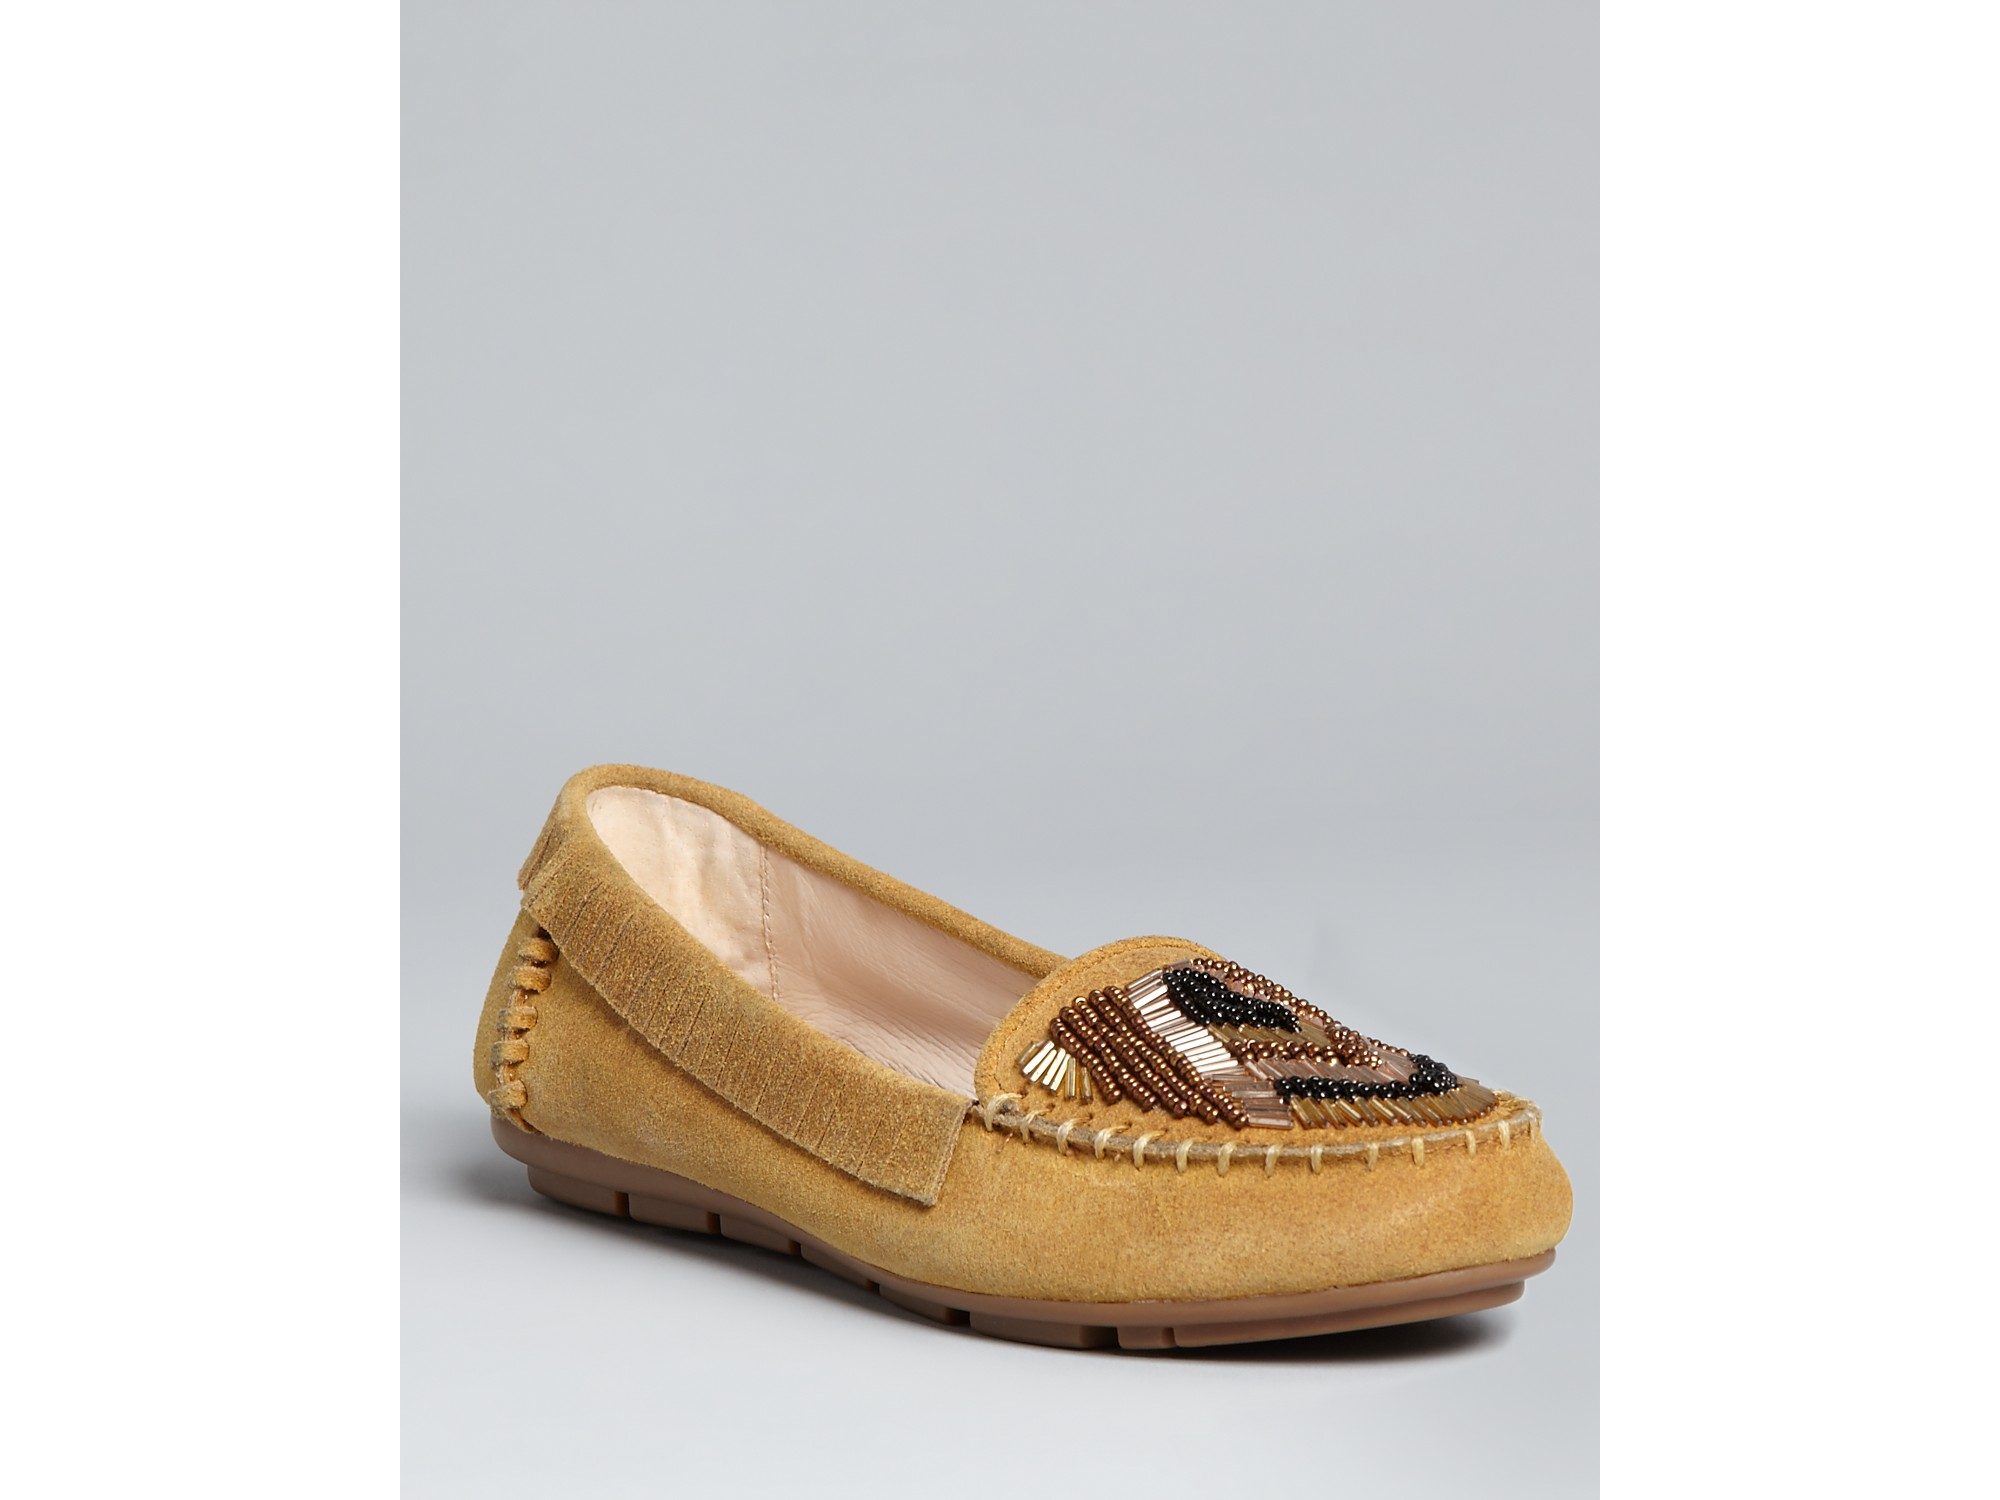 House of Harlow Bronze Leather Flats Loafers Moccasins Studded Shoes. Pre-Owned. $ or Best Offer House of Harlow, Silver, Kail Embossed Snake Driving Moccasin, Sz New (Other) House Of Harlow Sillia Black Suede Over the .